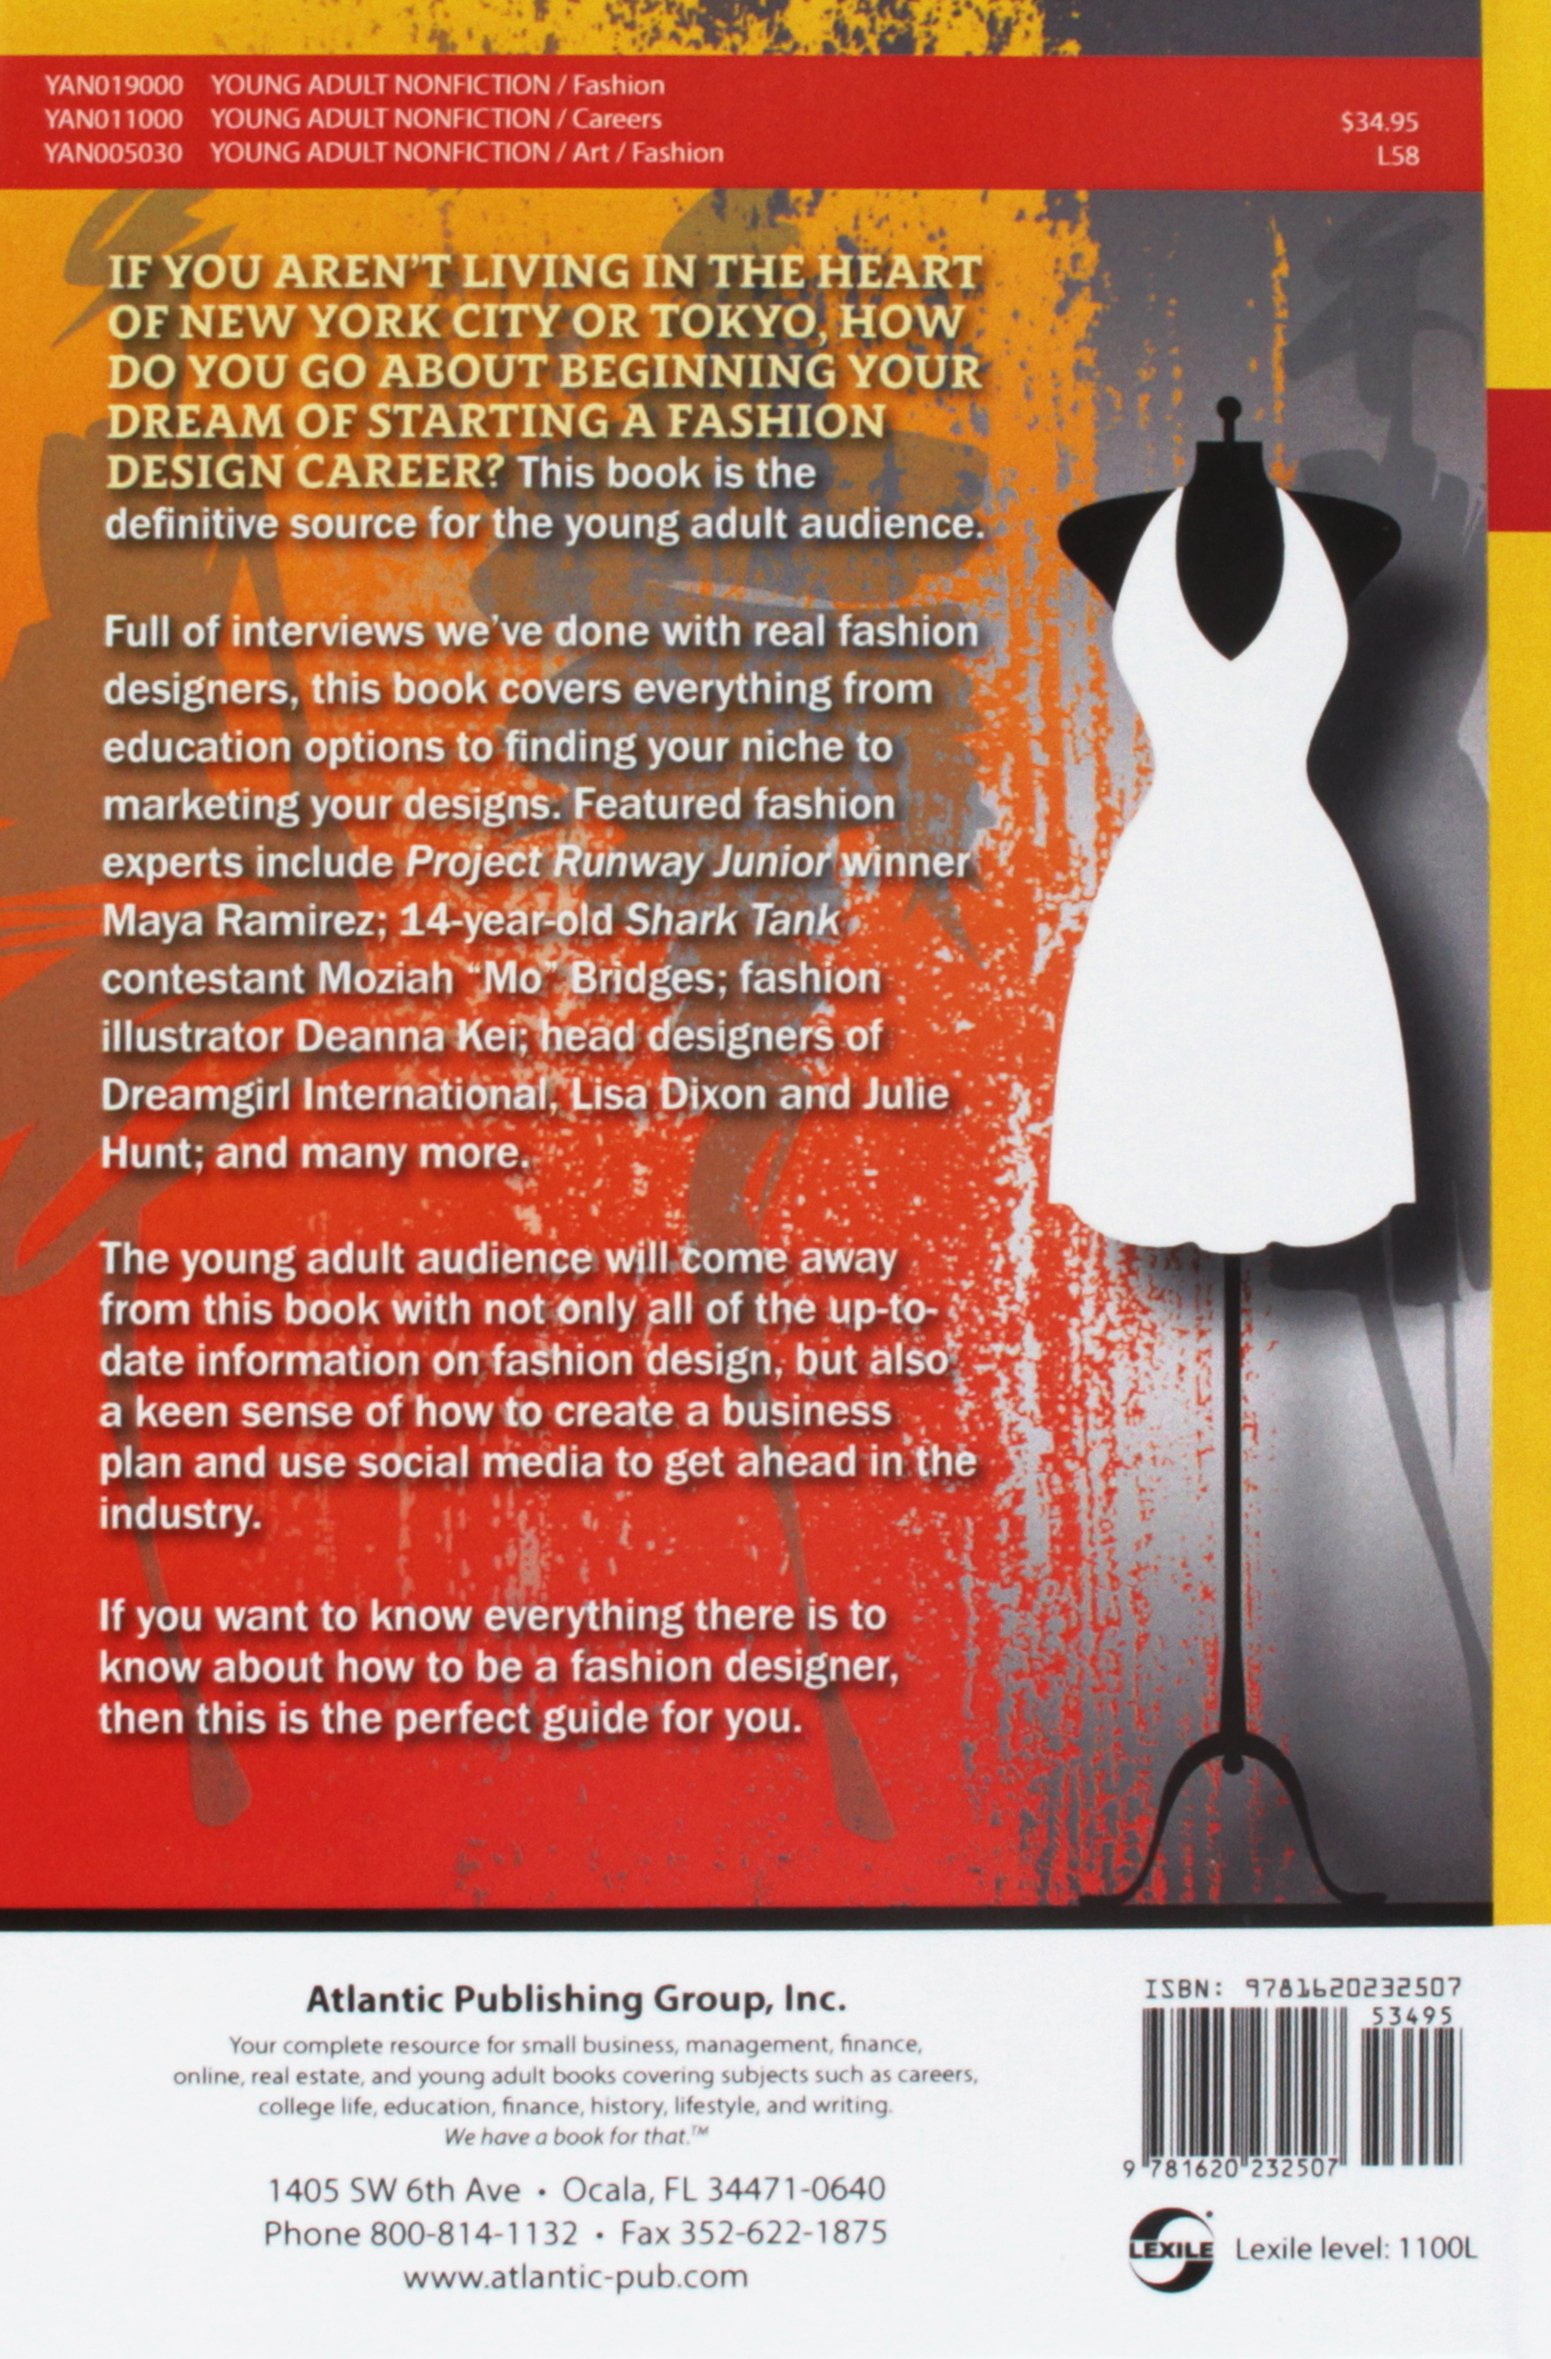 Buy So You Want To Be A Fashion Designer Here S The Info You Need Book Online At Low Prices In India So You Want To Be A Fashion Designer Here S The